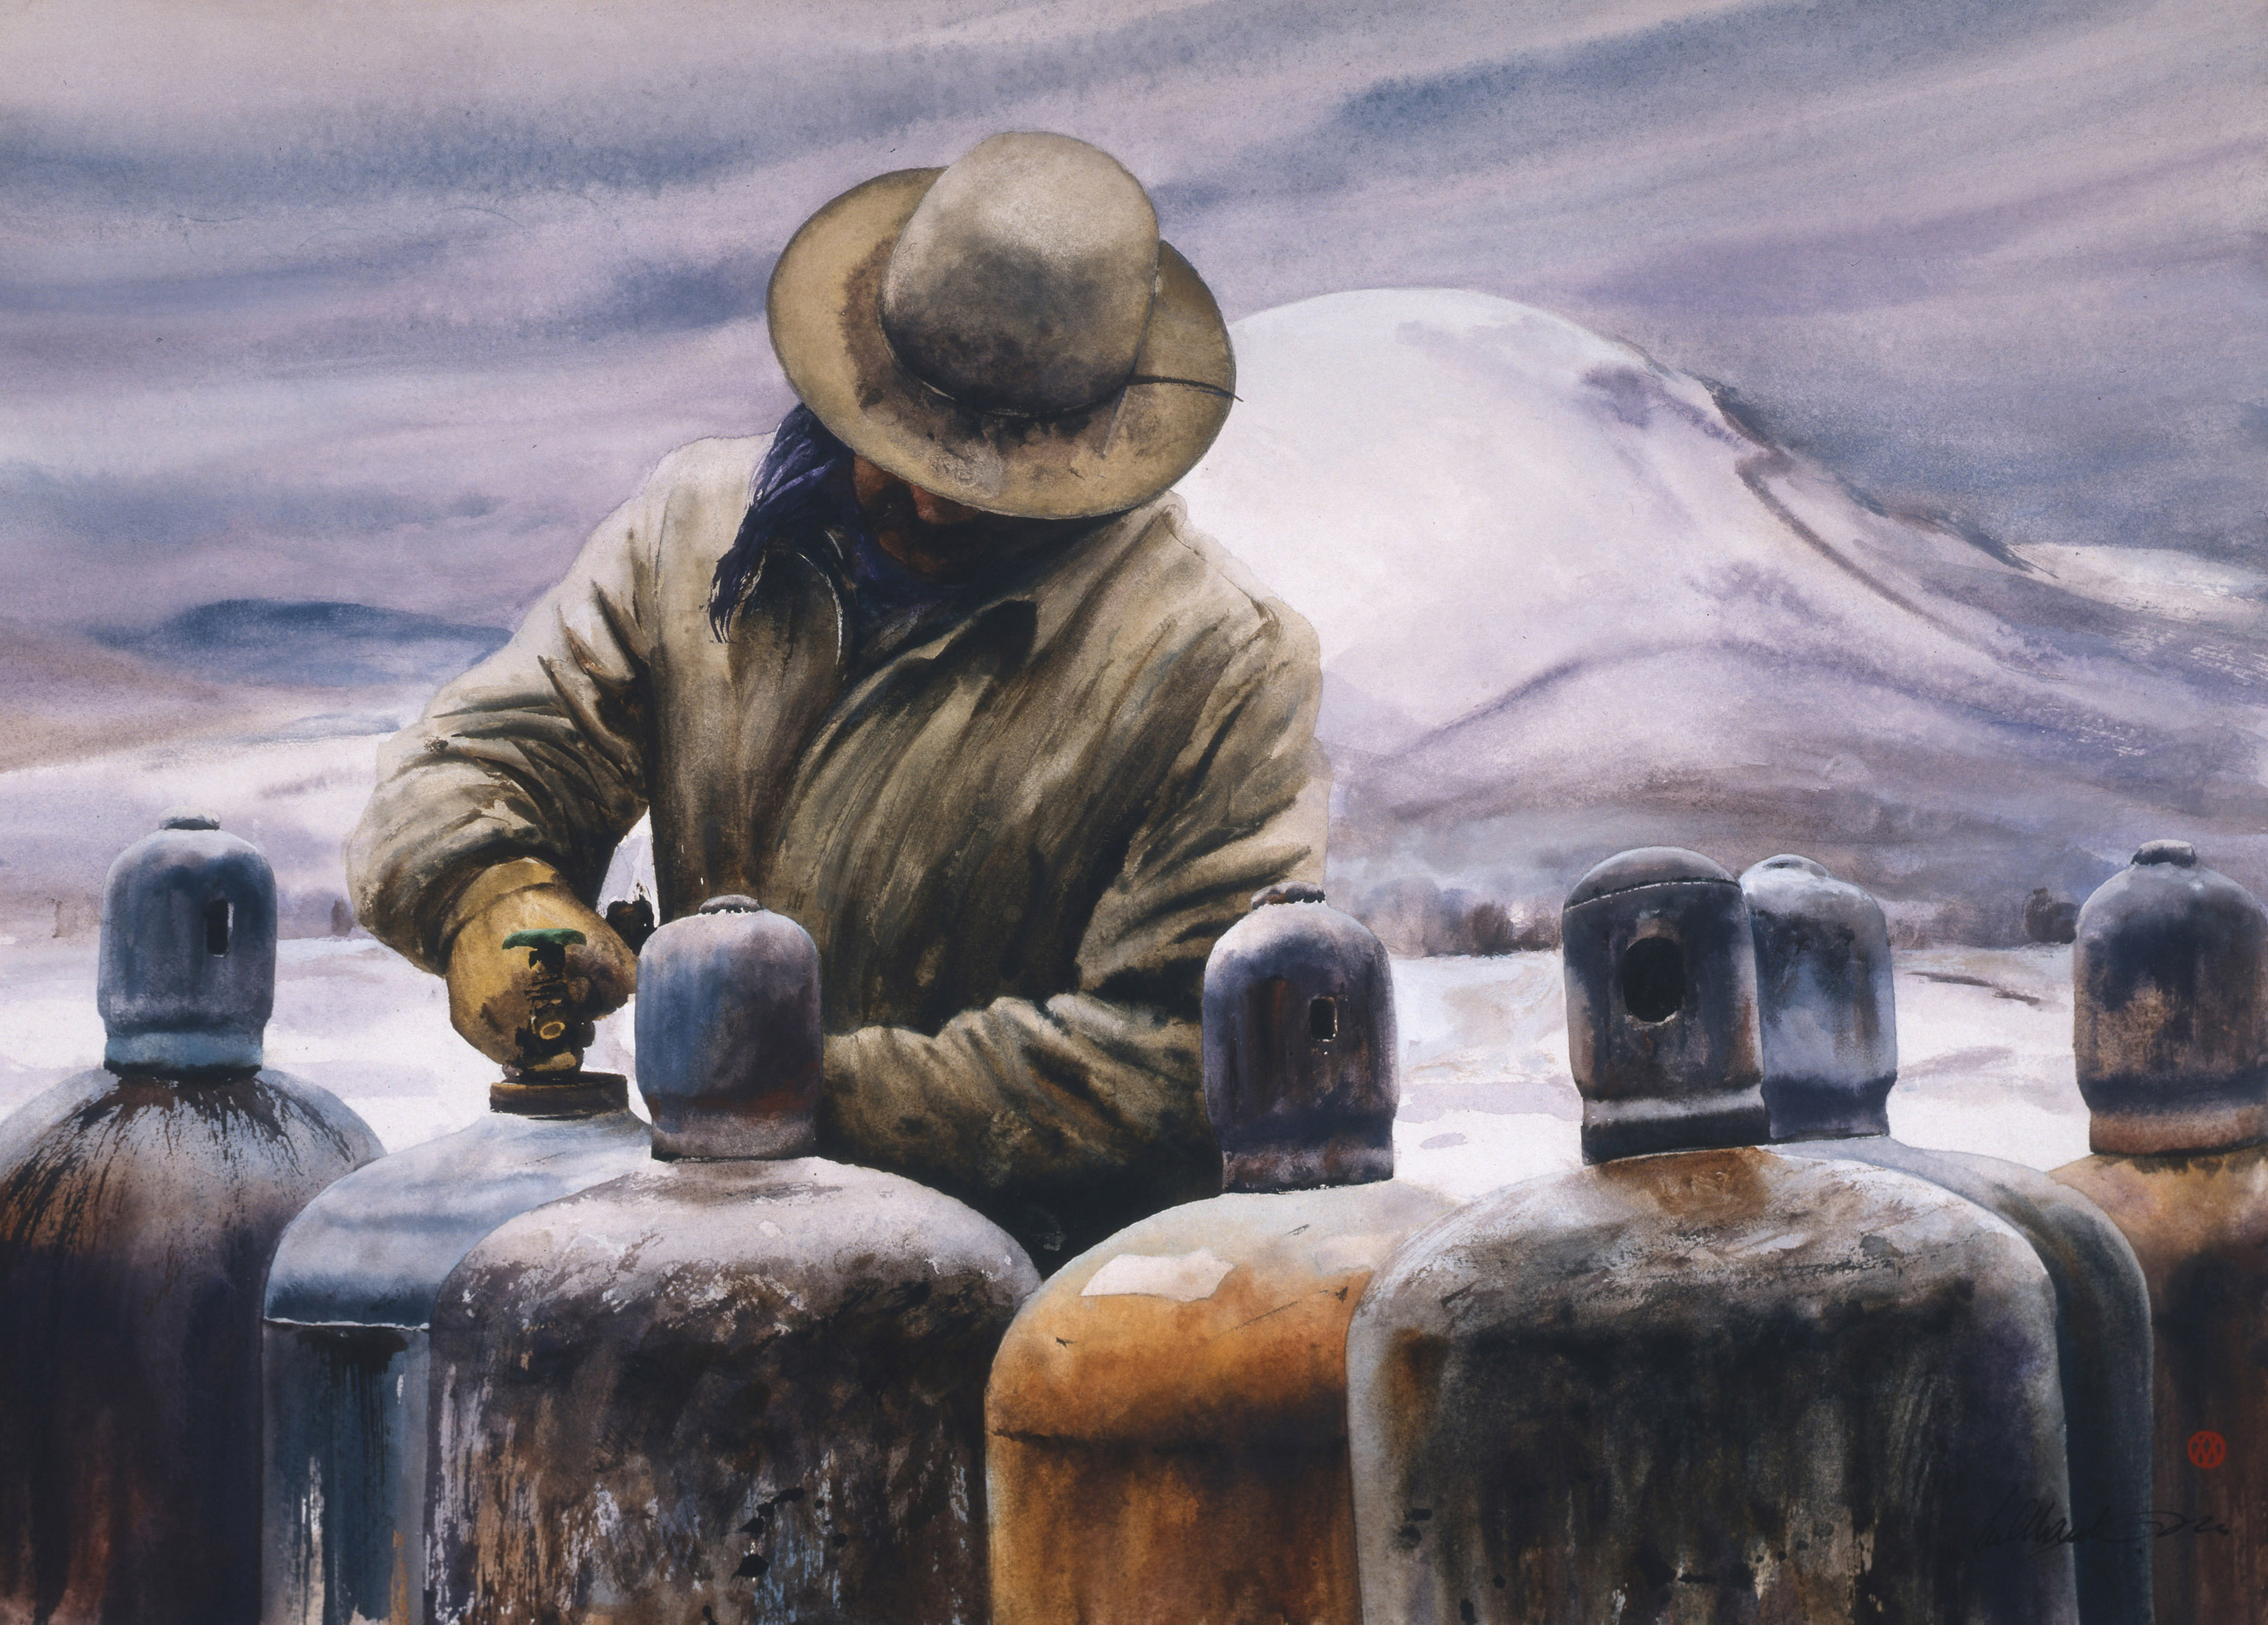 """<p>William Matthews (American, b. 1949), """"Bottle Tops"""", 2005. Watercolor on paper;<br />39-1/2 x 43-3/4 in. (framed). Collection of the artist.</p>"""